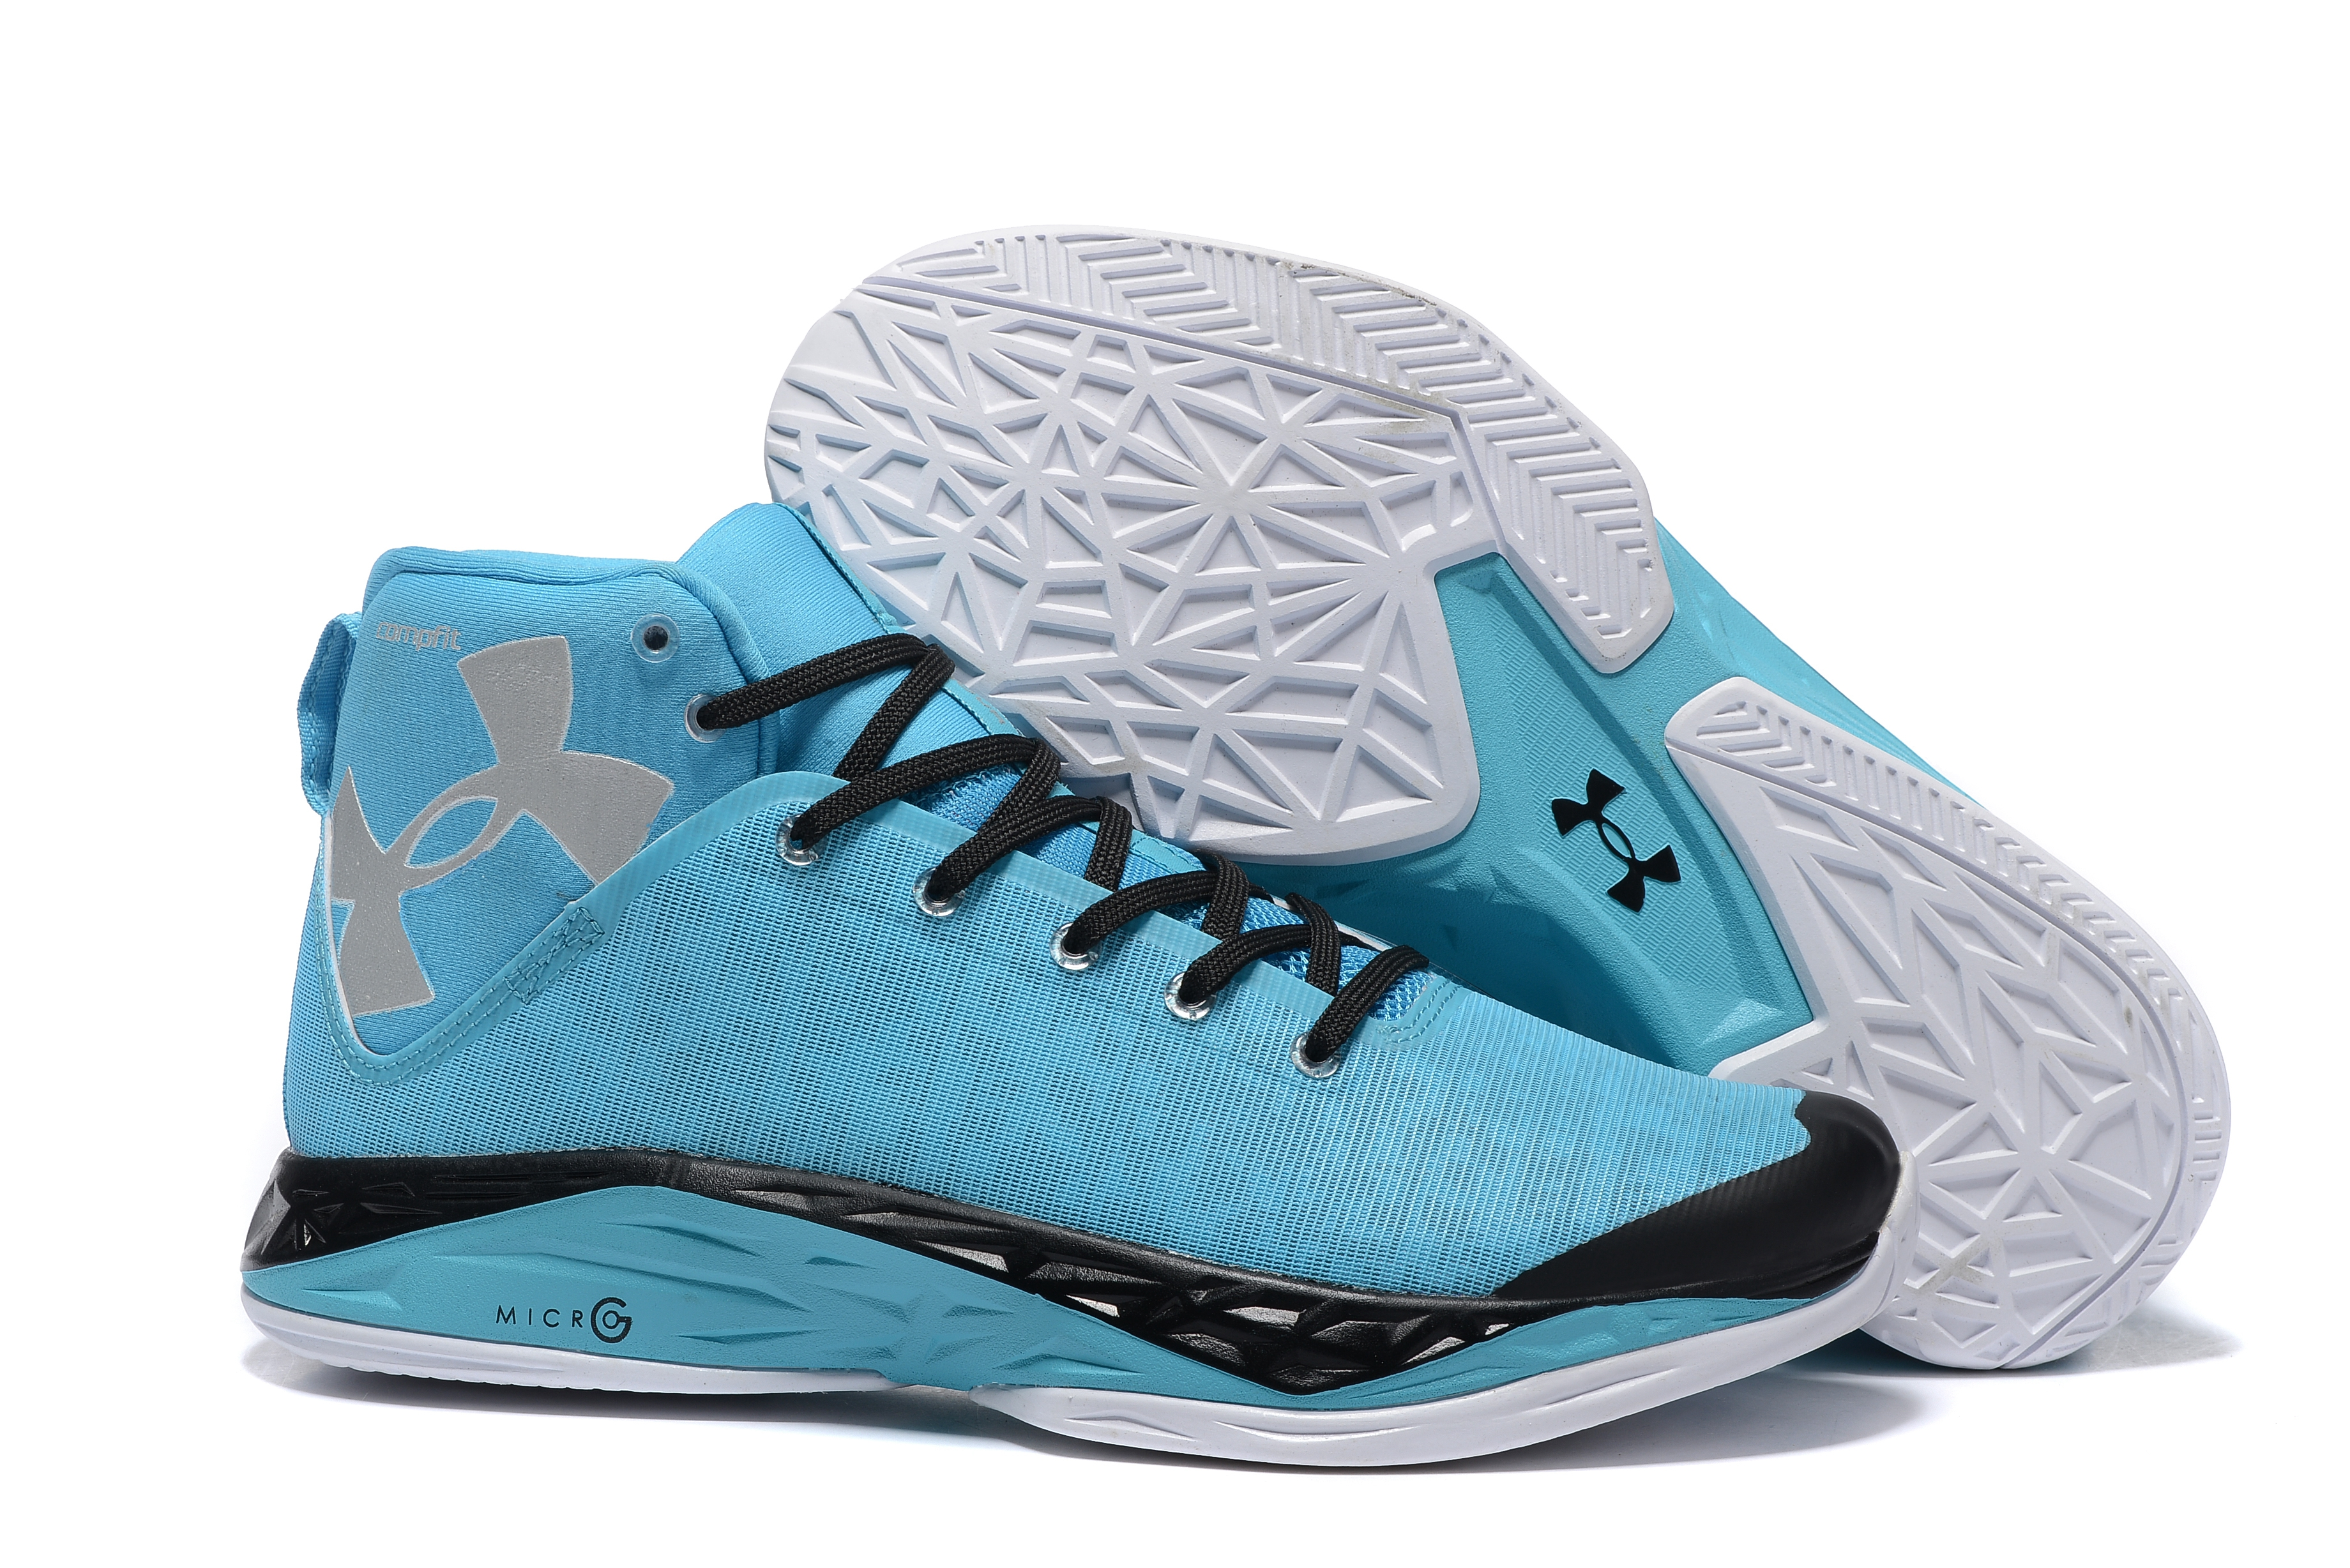 Cheap Under Armour Shoes | Under Armour Baseball Shorts | Cheap Nike Basketball Shoes